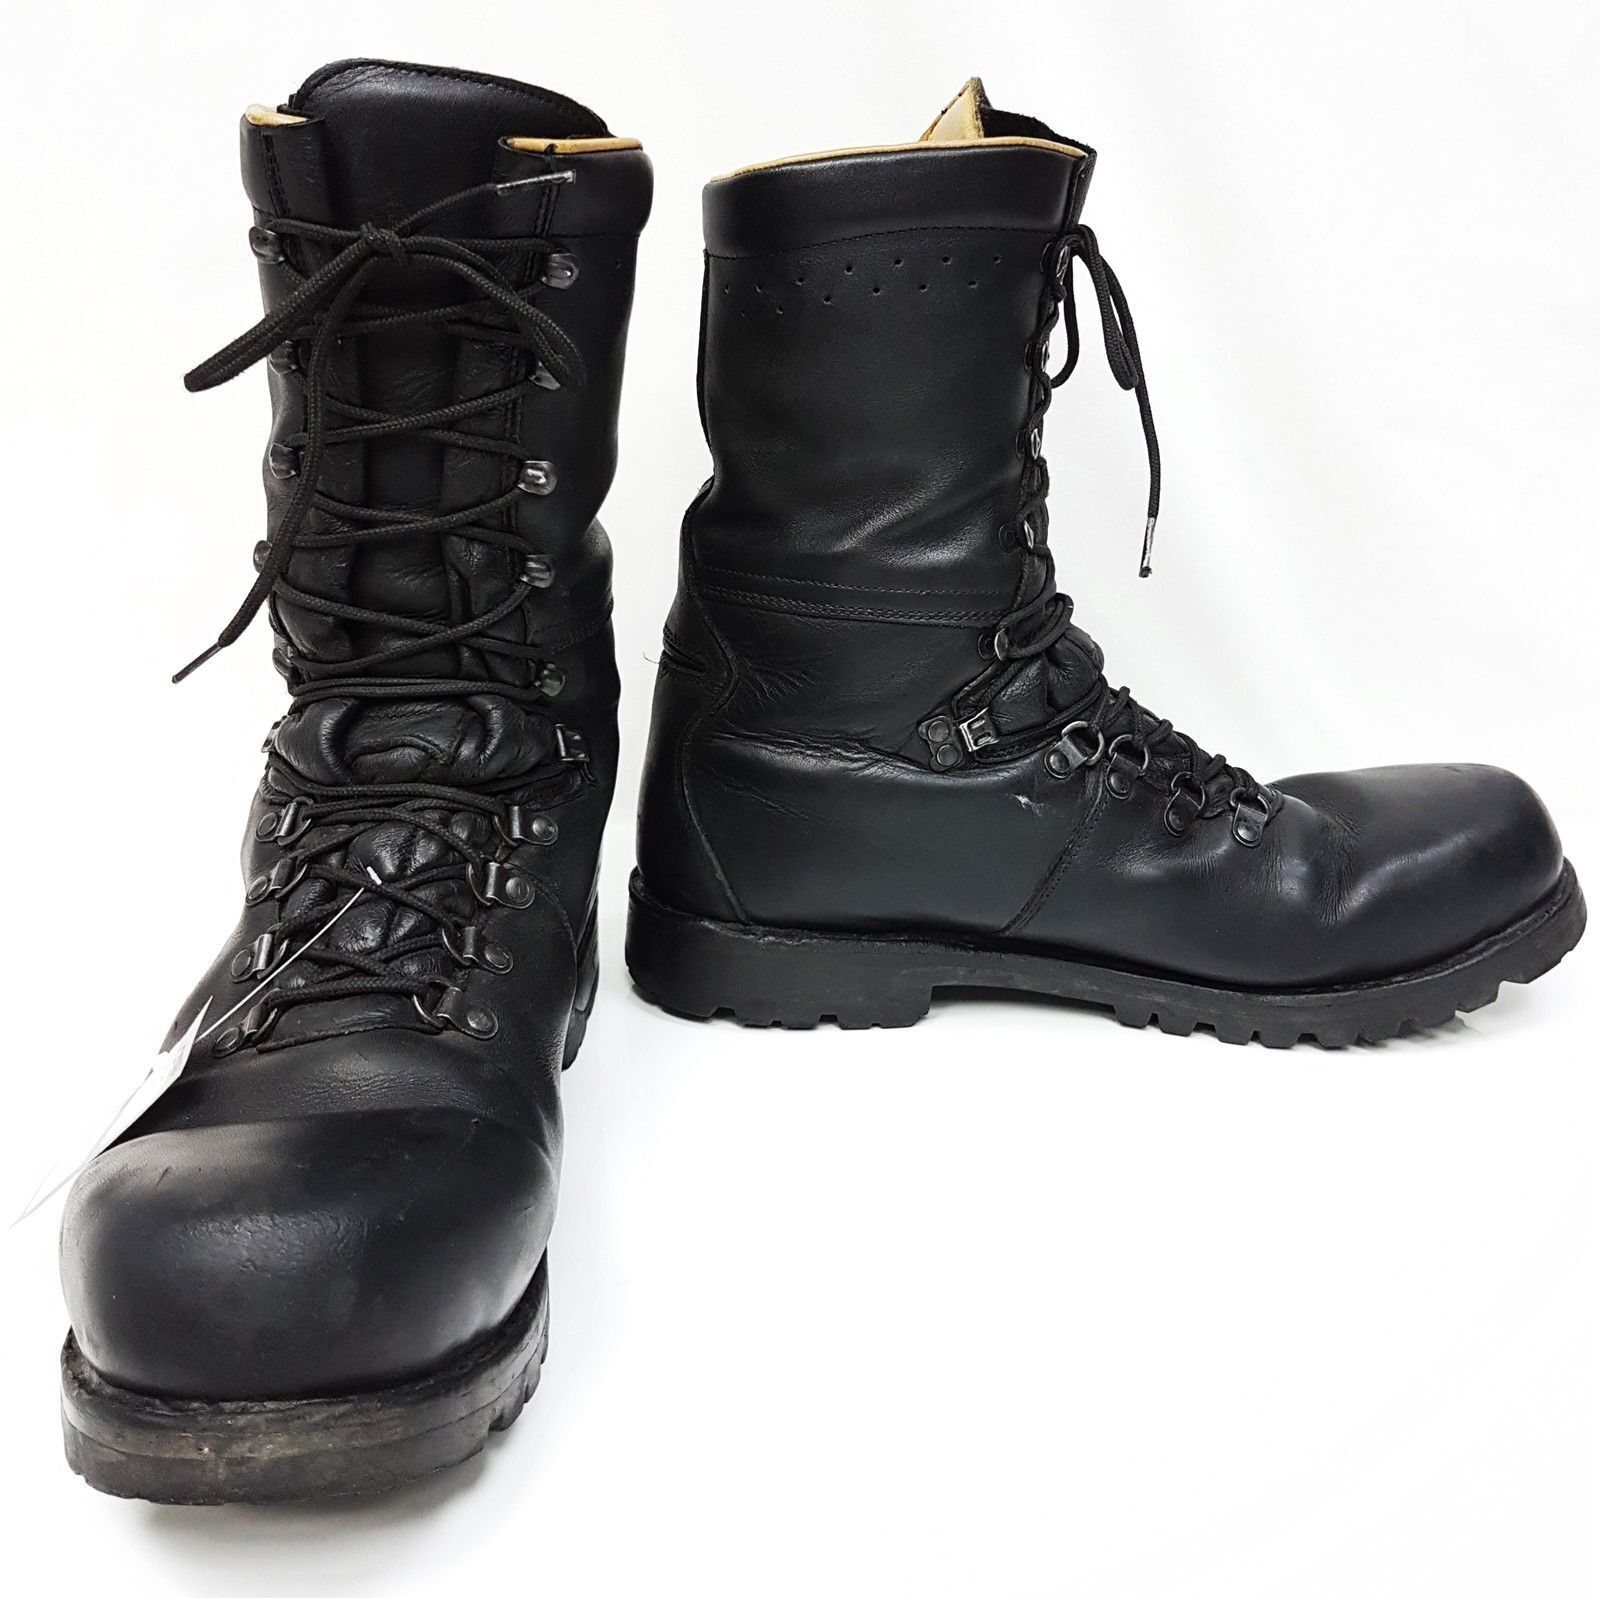 Leather Para Boots Austrian Assault German Lined & Padded Grade 1 Surplus Boots